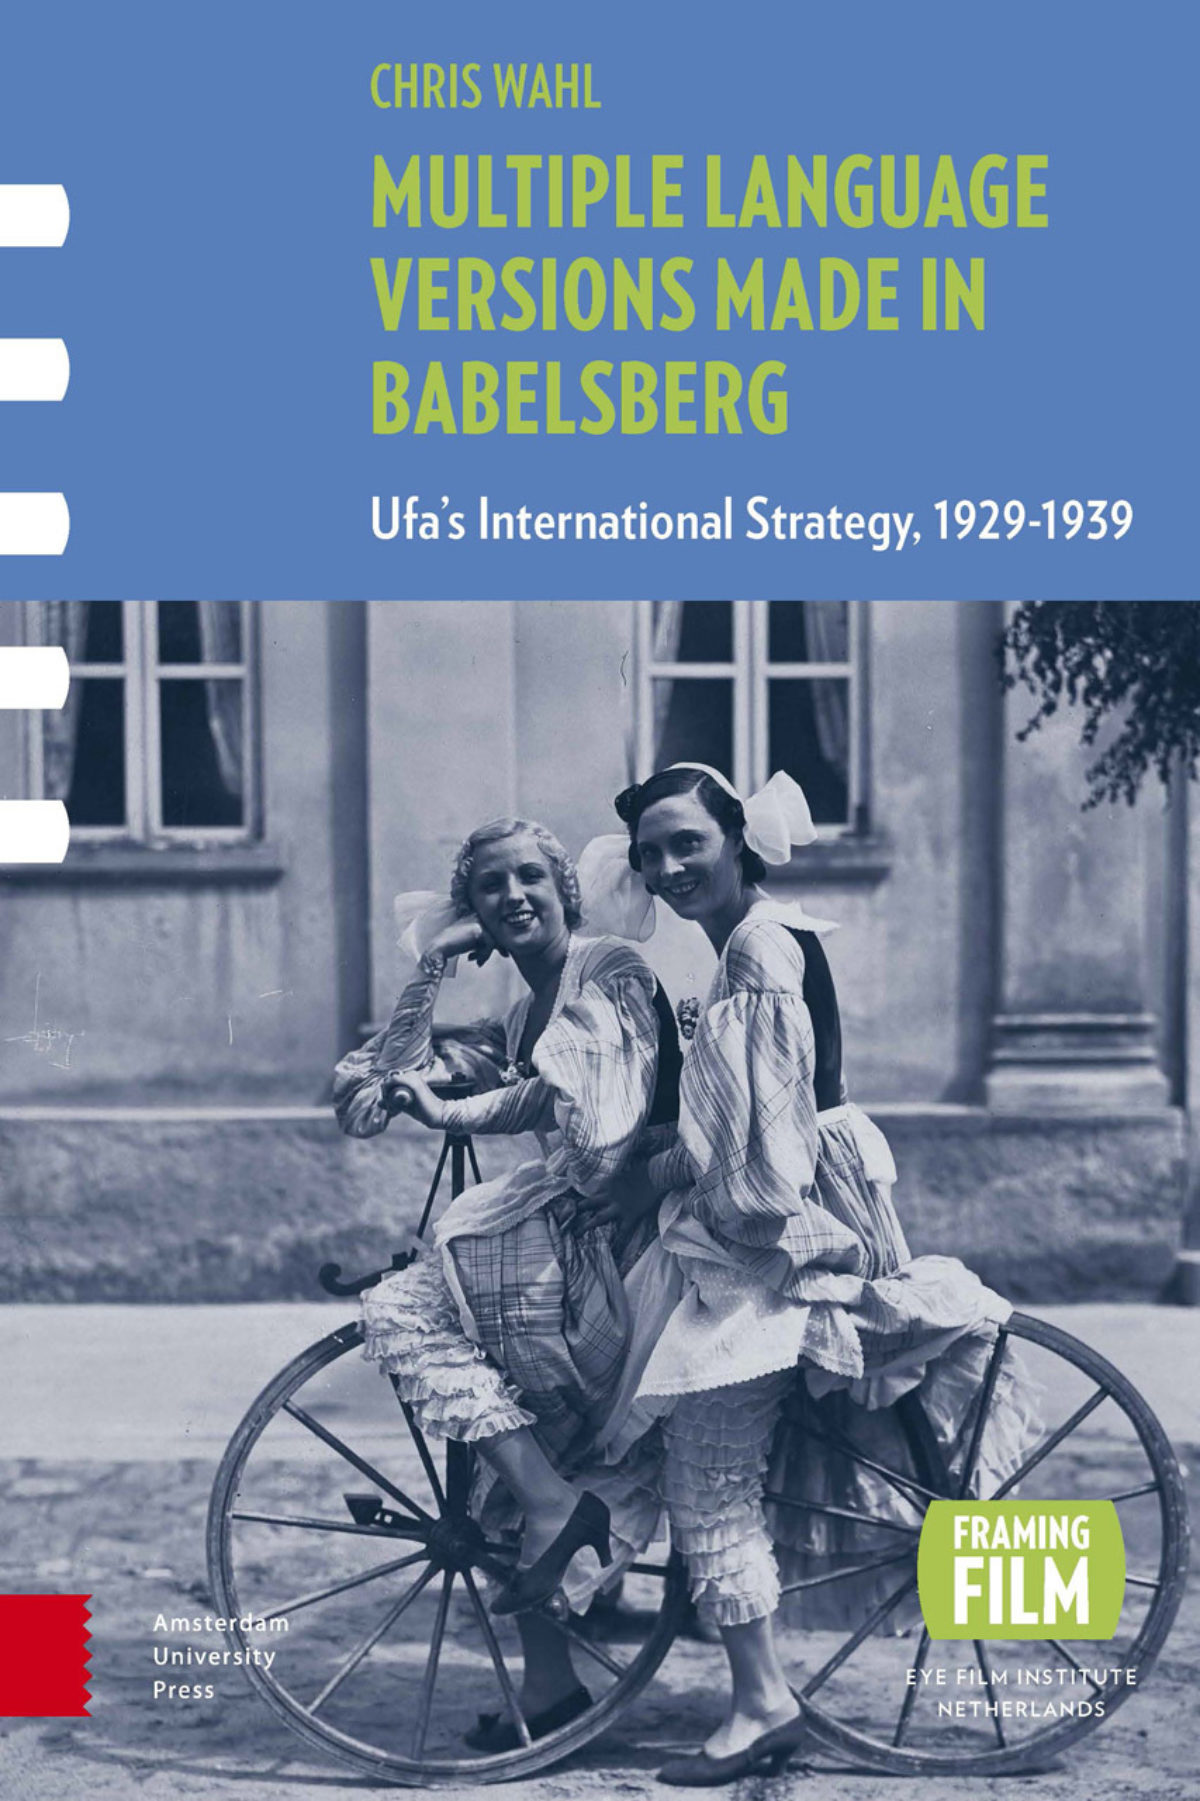 Multiple Language Versions Made in Babelsberg: Ufa's International Strategy, 1929-1939 (2015) by Chris Wahl